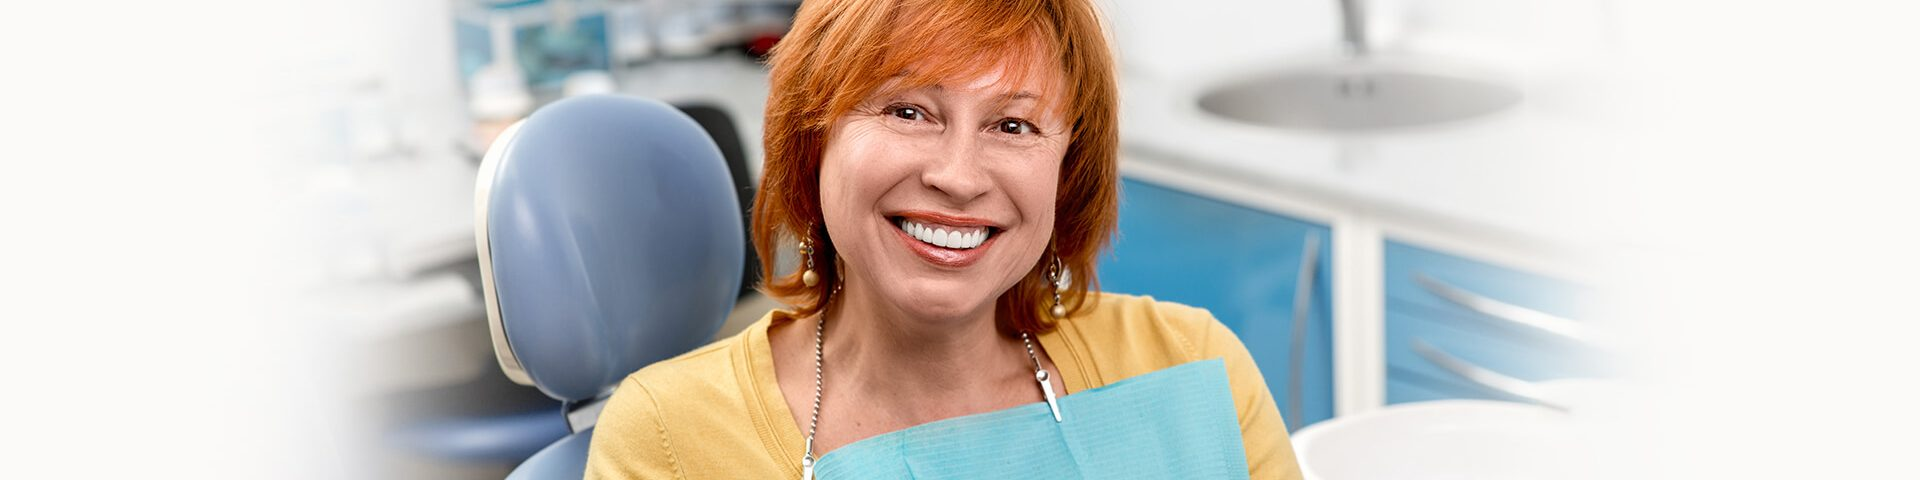 Closing the Gaps in Your Smile with a Dental Bridge